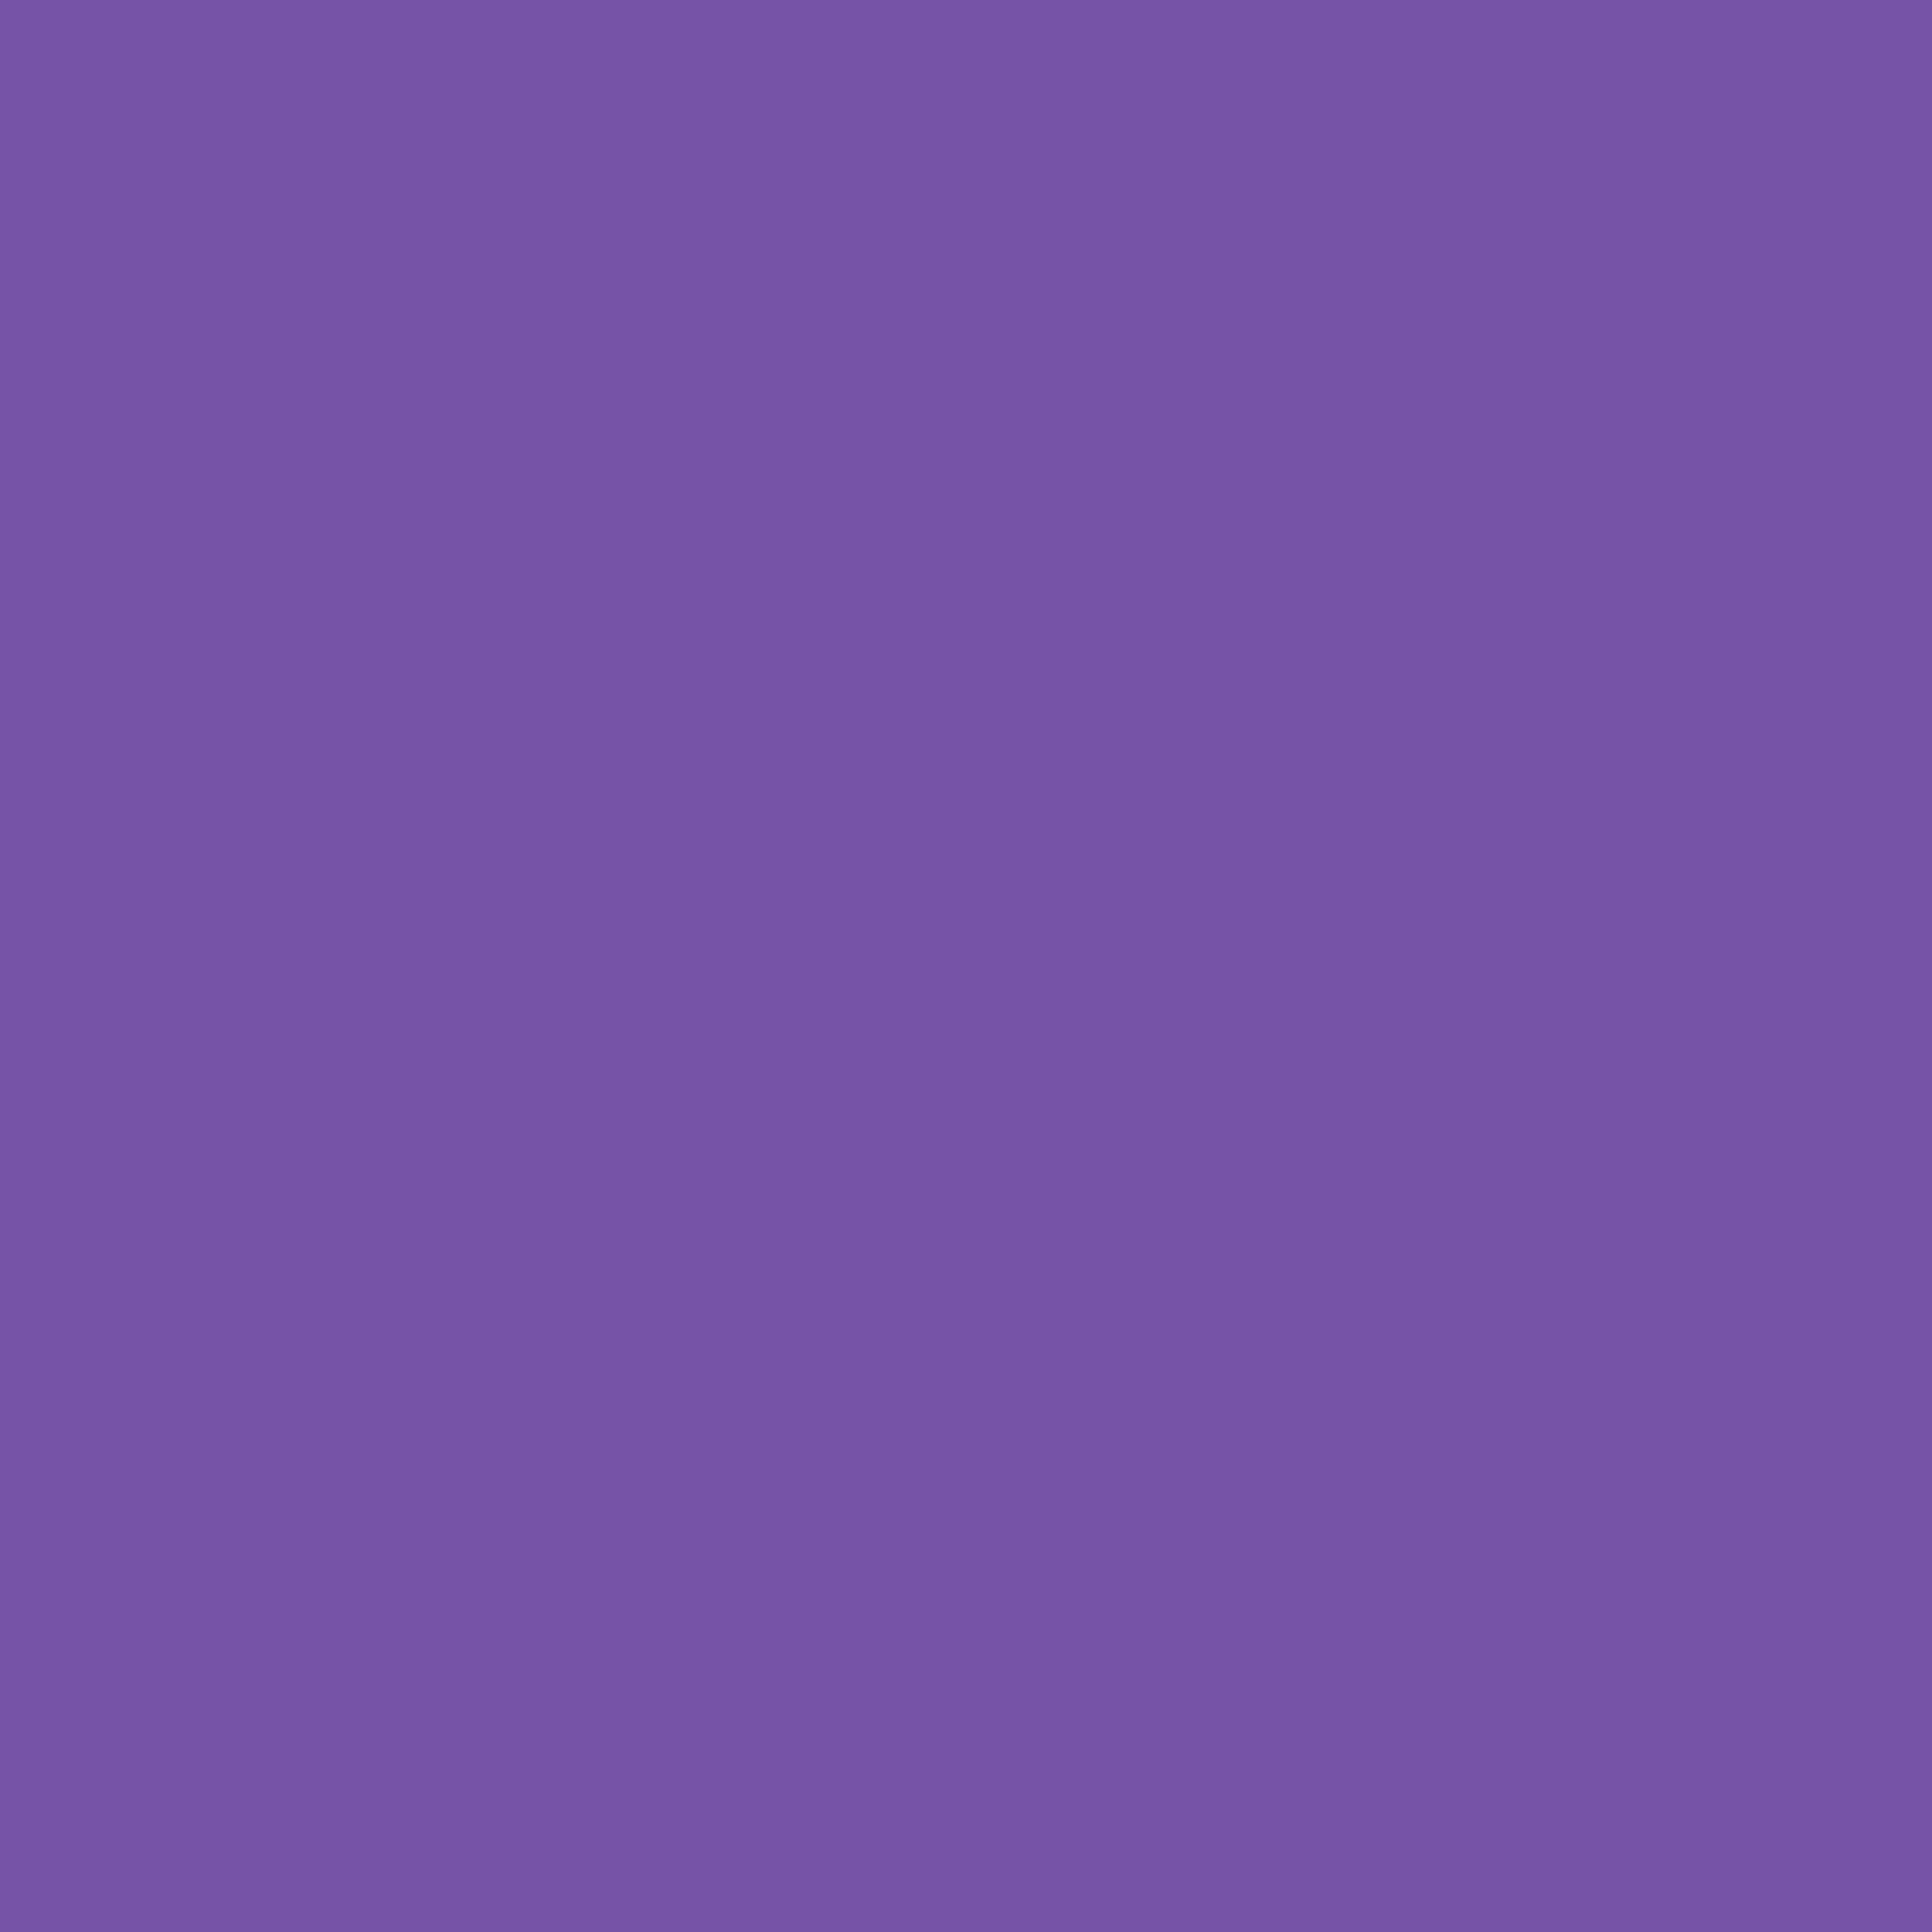 2732x2732 Royal Purple Solid Color Background